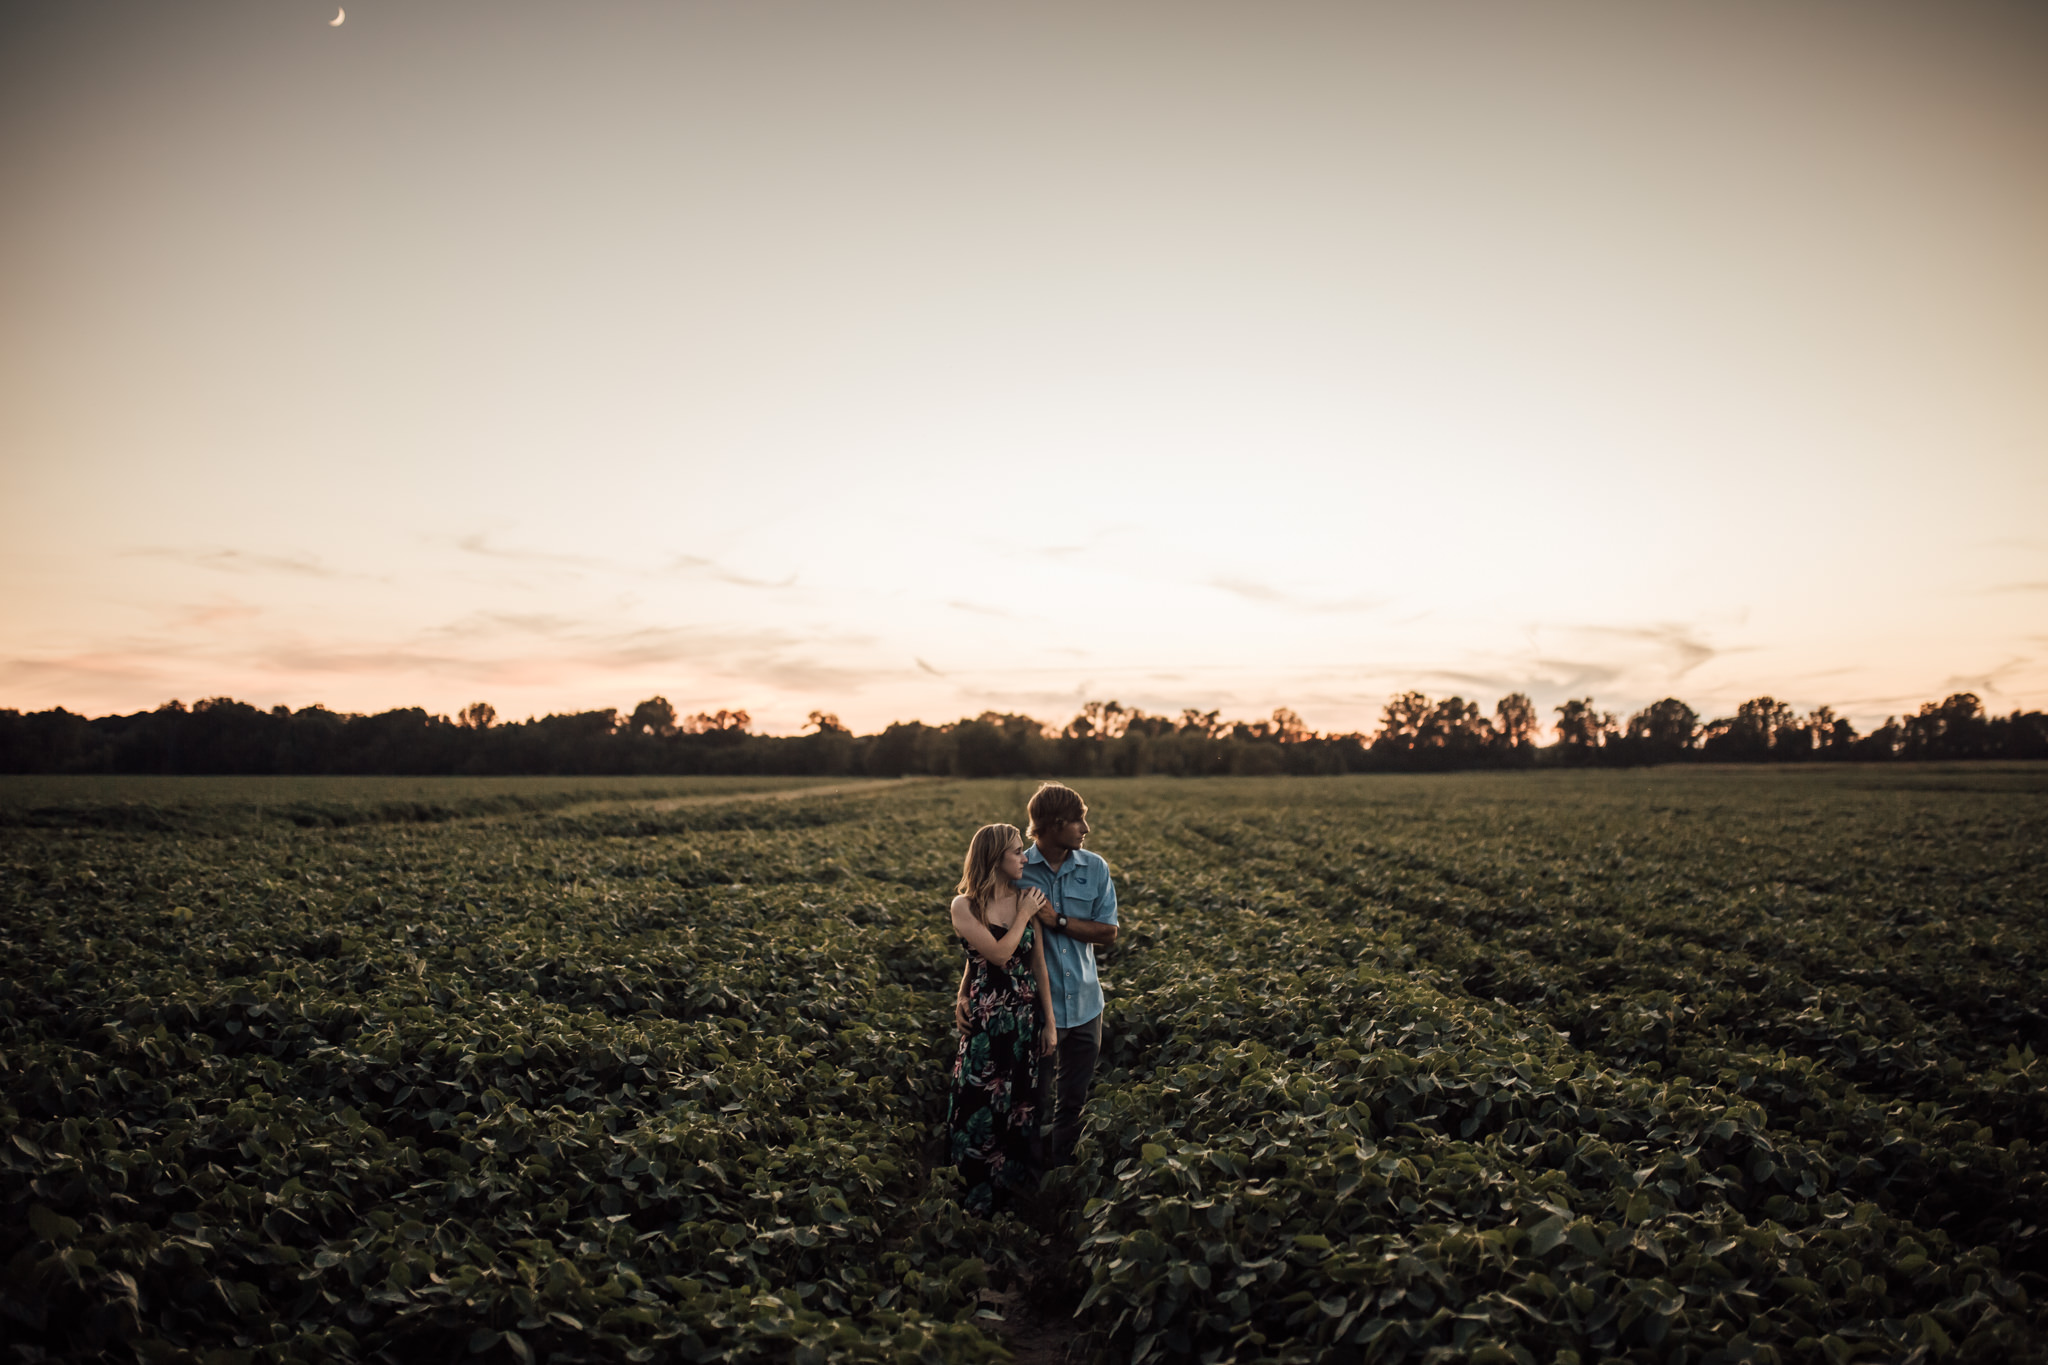 cassie-cook-photography-shelby-farms-engagment-pictures-memphis-wedding-photographer-19.jpg